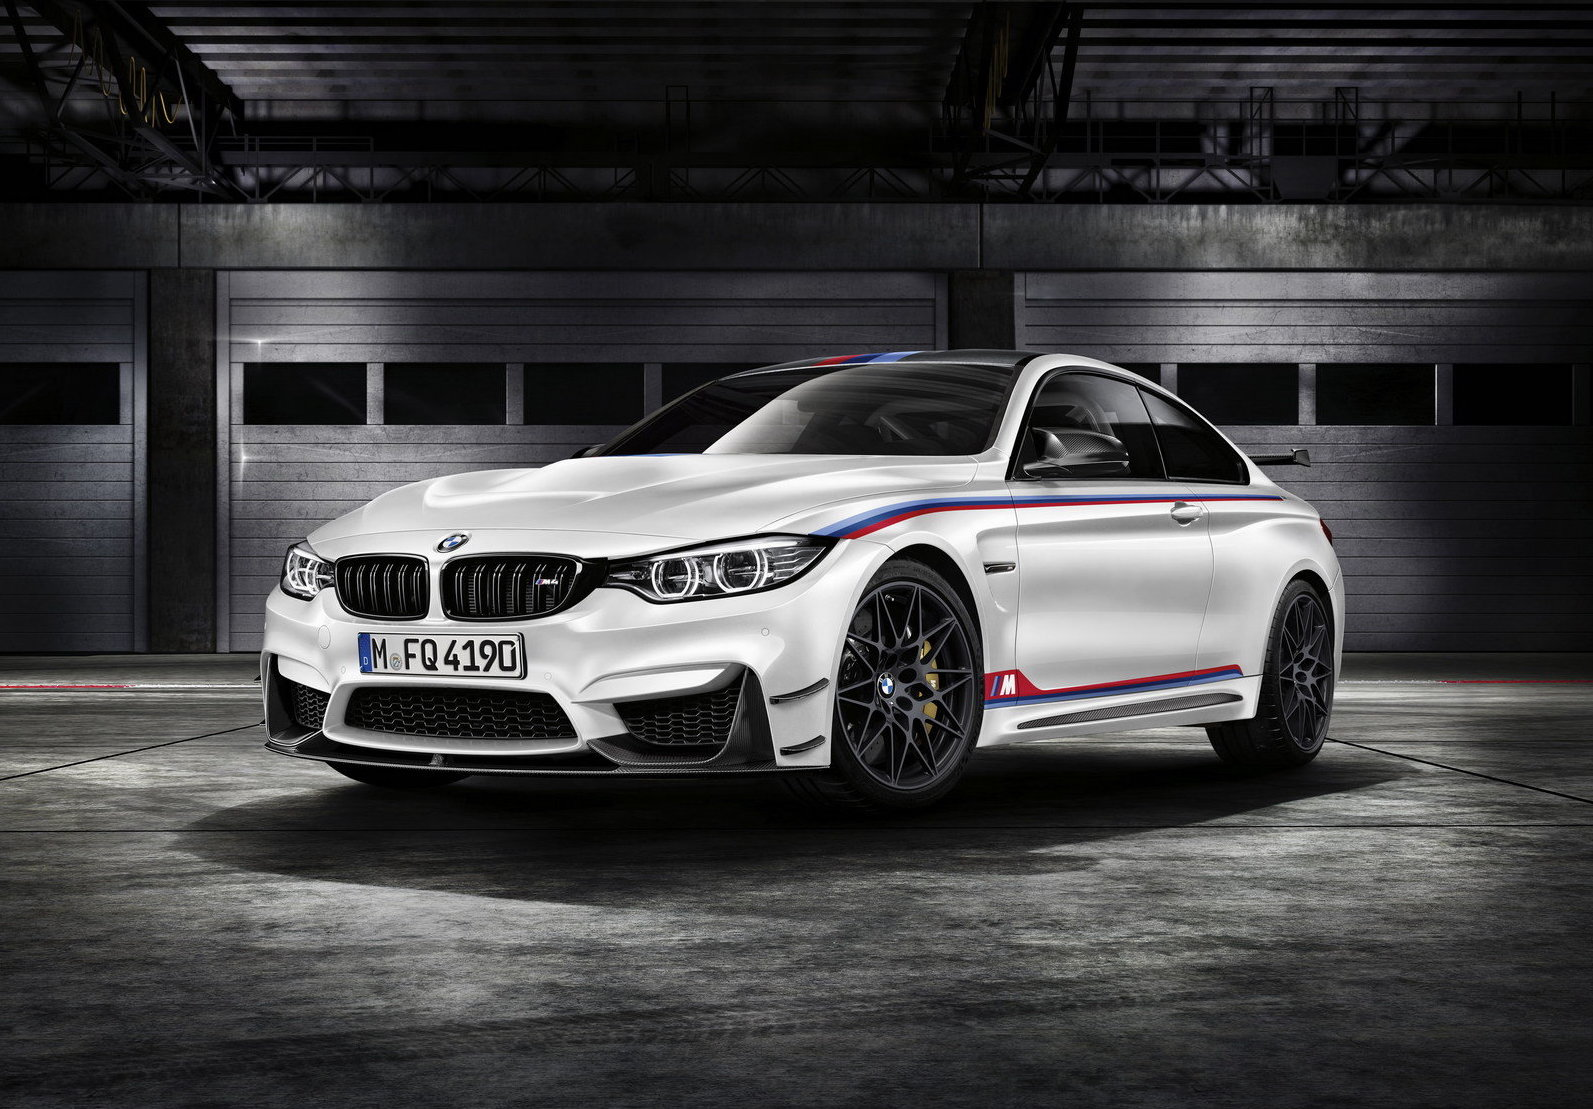 BMW M4 DTM Limited Edition